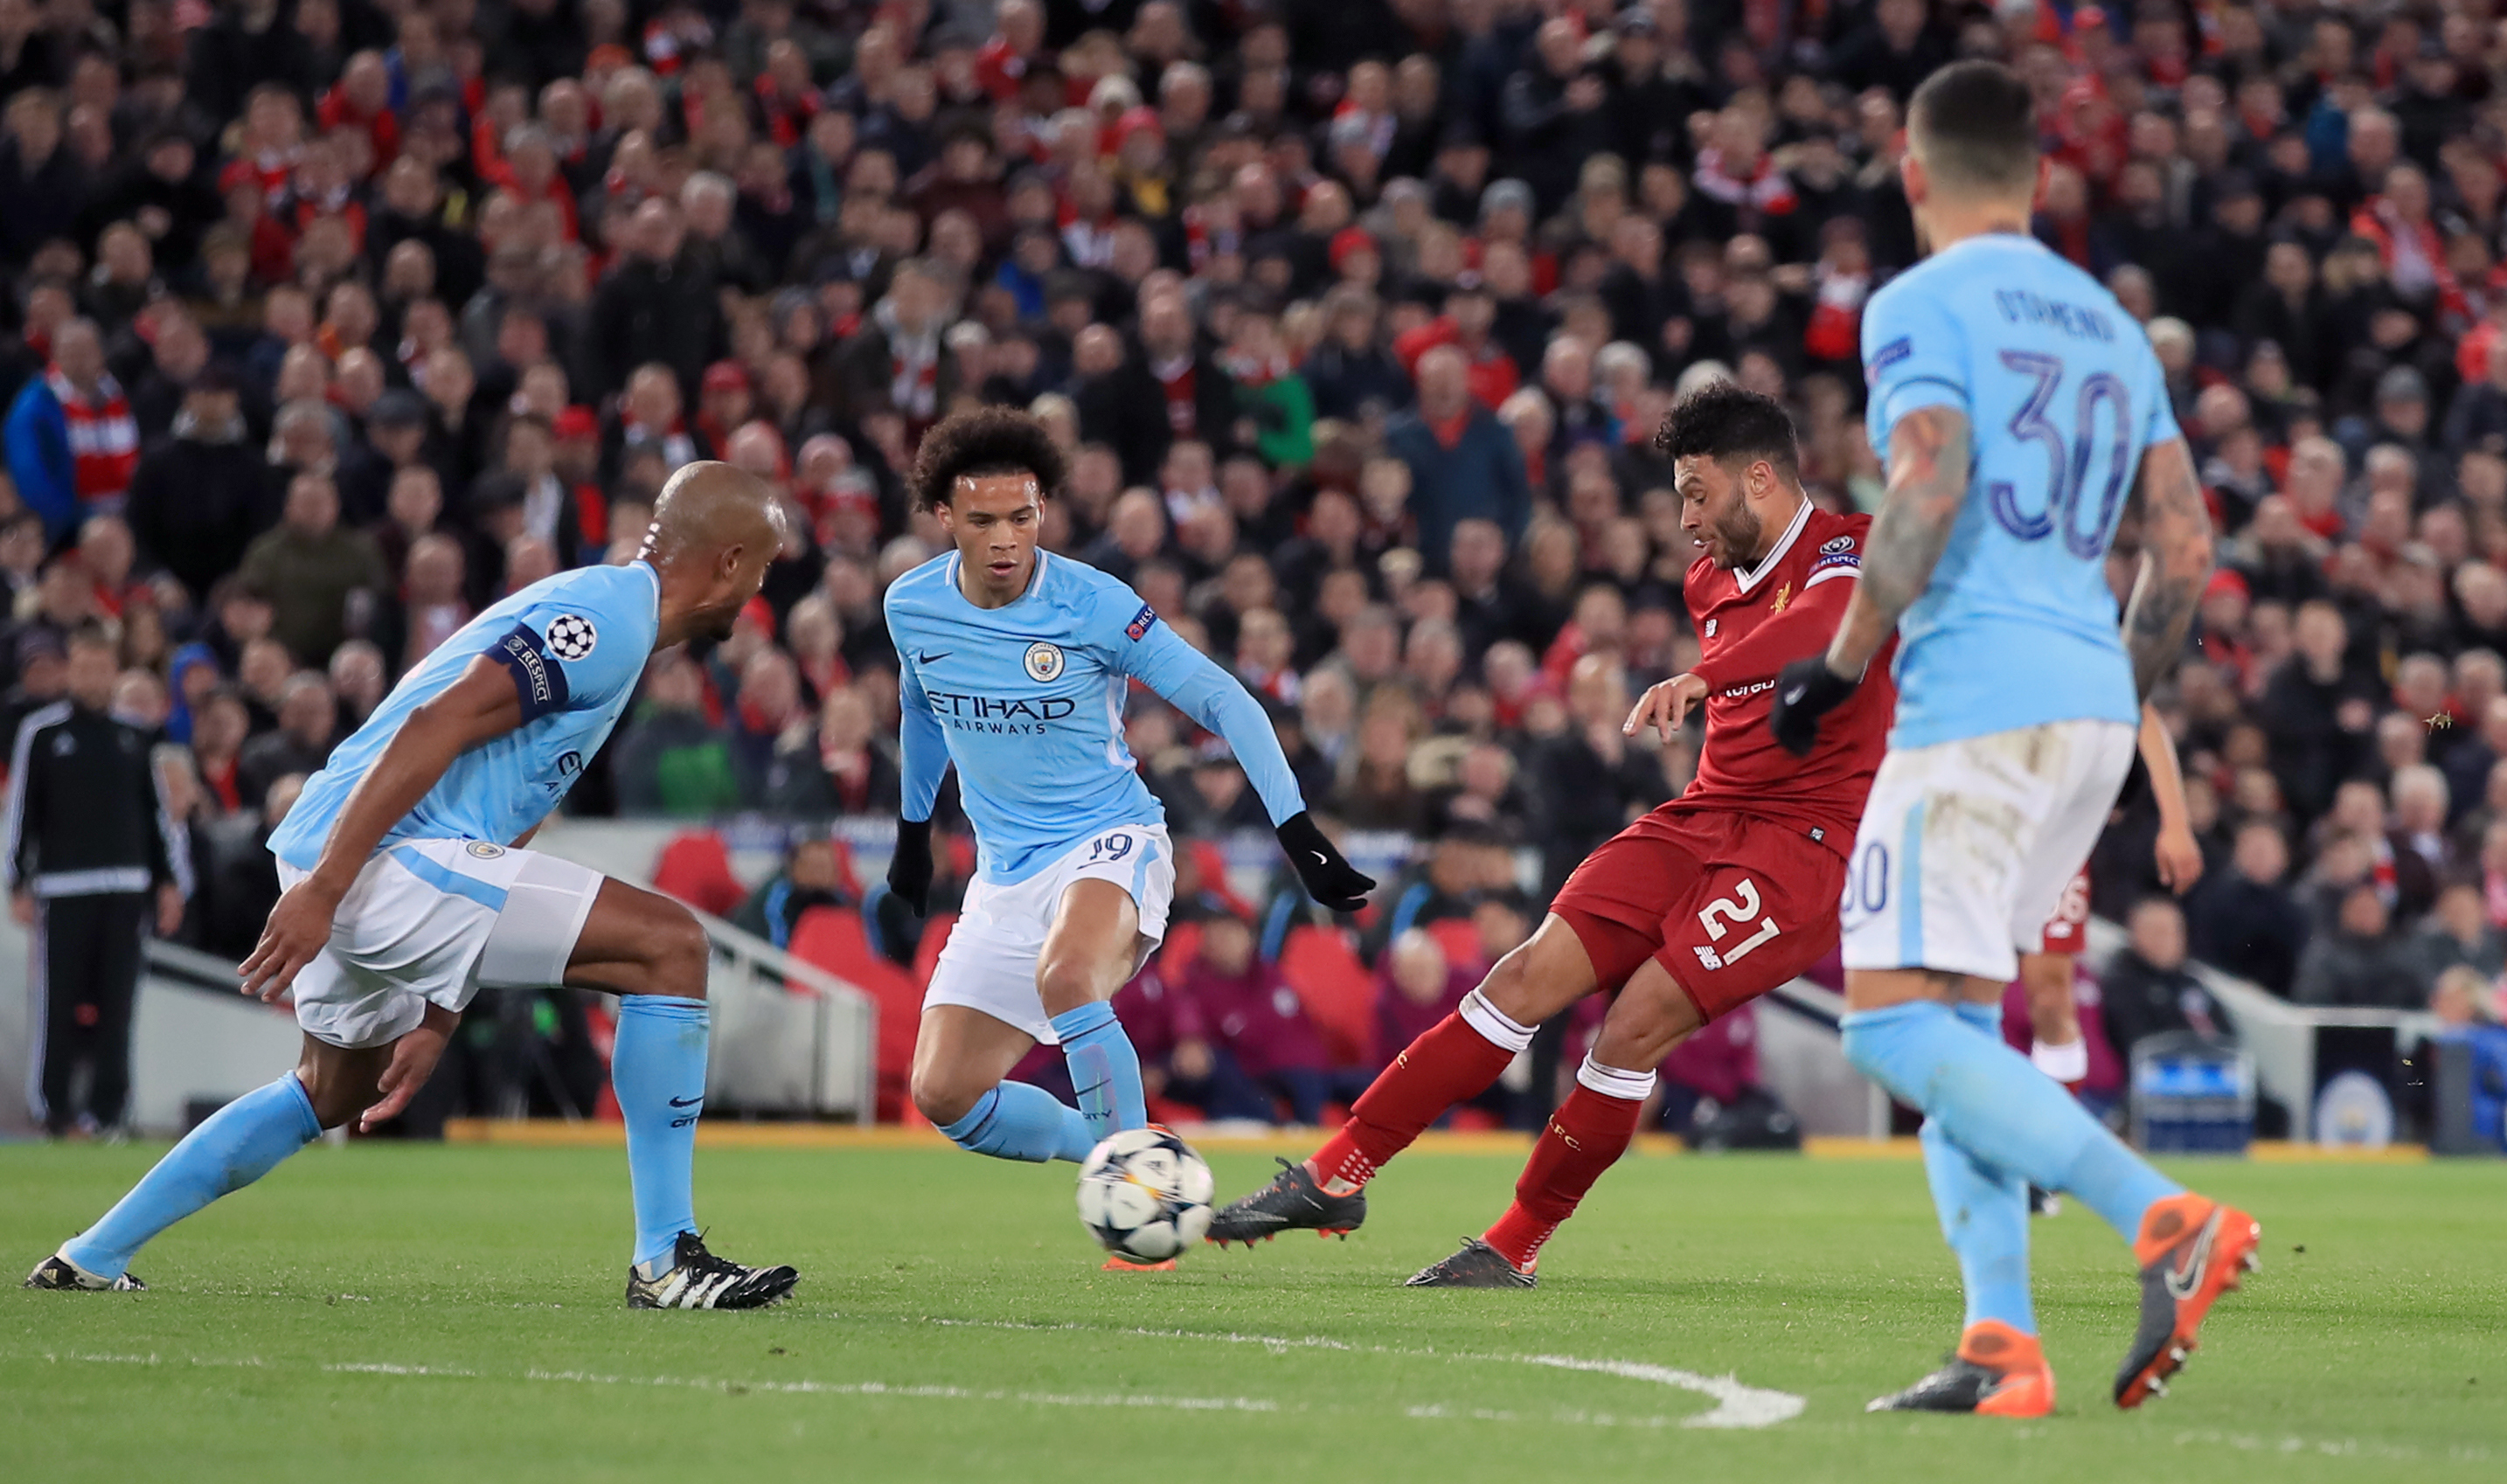 Oxlade-Chamberlain shoots, and scores. Image: PA